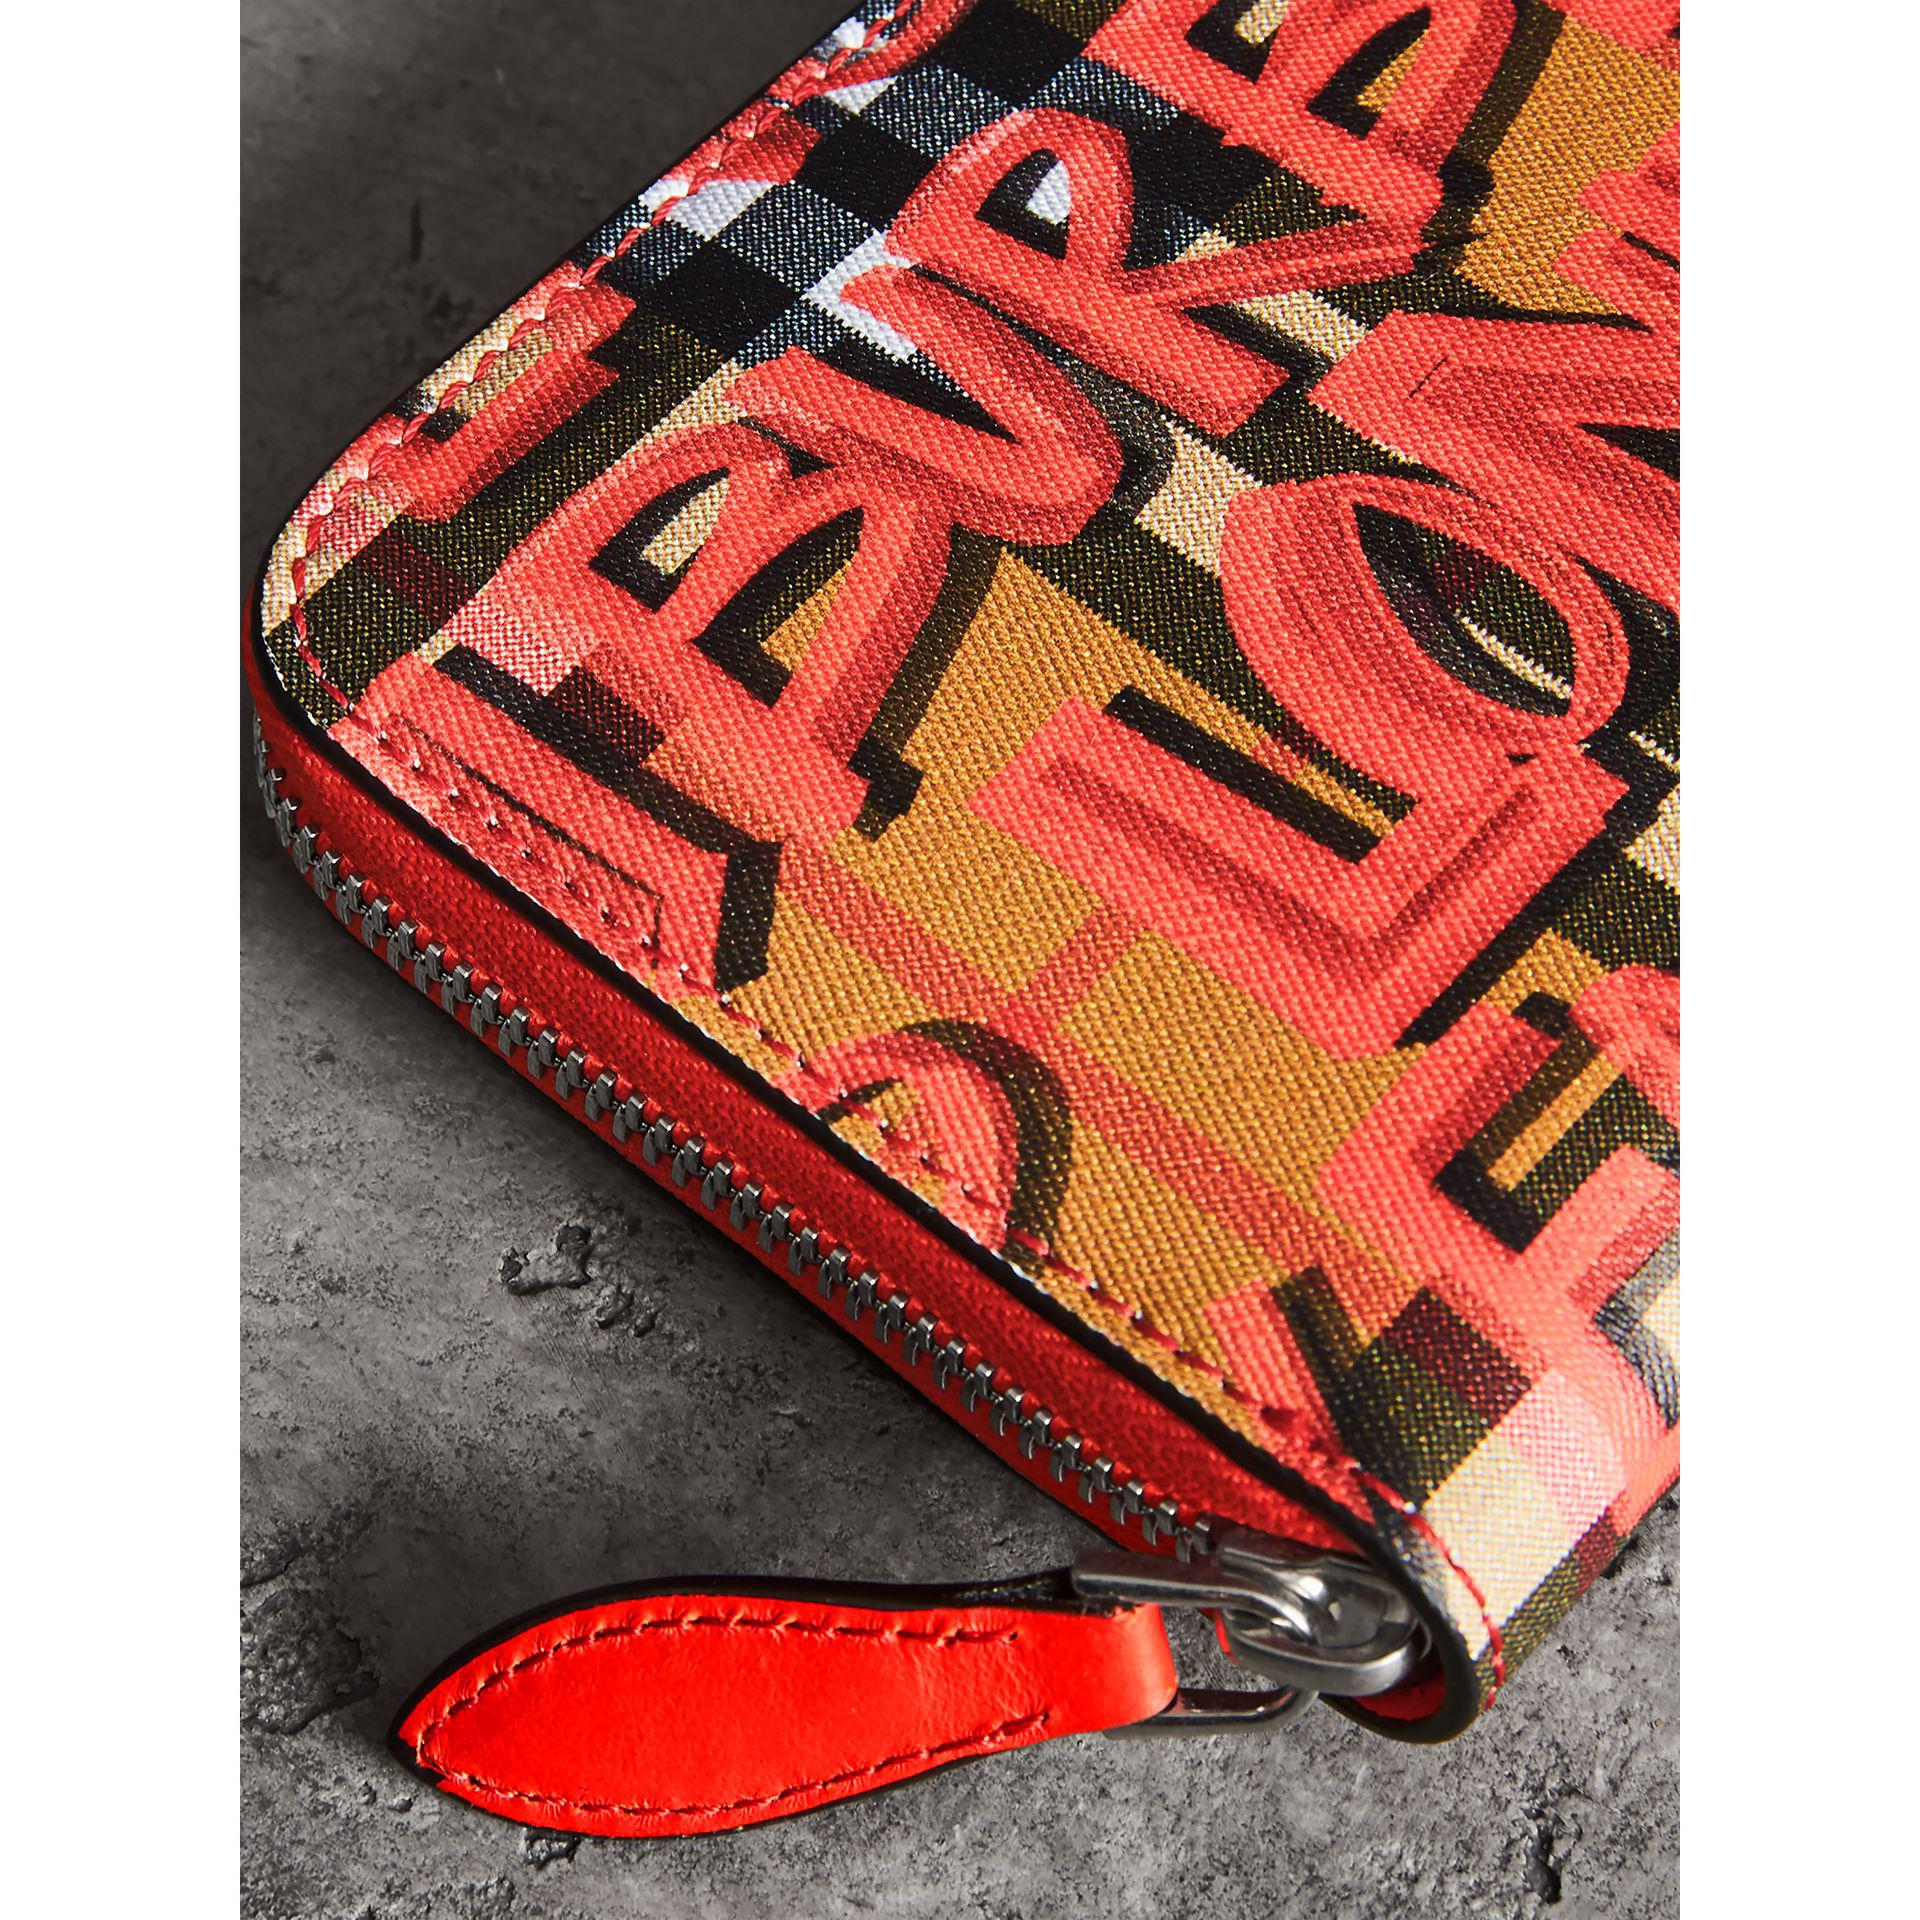 111263fd393 Burberry - Red Graffiti Print Vintage Check Leather Ziparound Wallet -  Lyst. View fullscreen